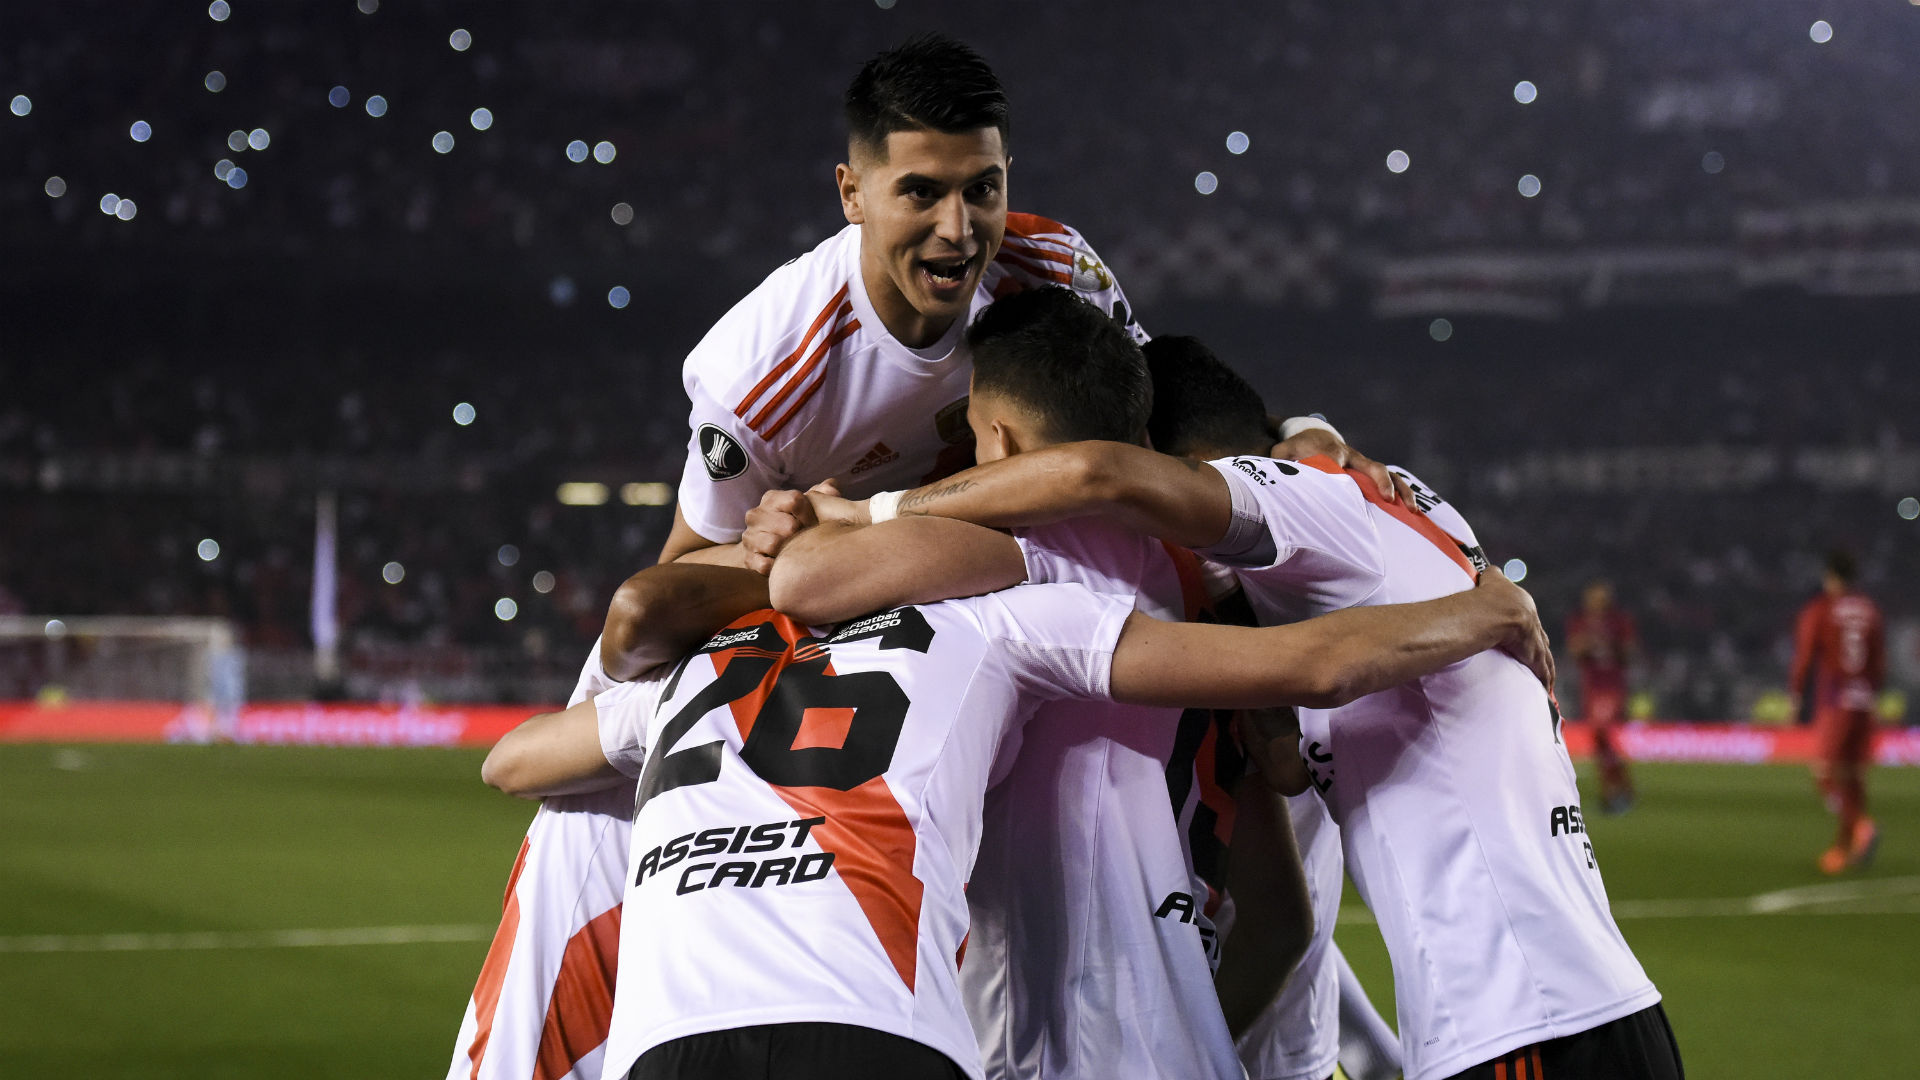 River Plate v Boca Juniors: The worst Libertadores semi-final records ahead of Superclasico clash